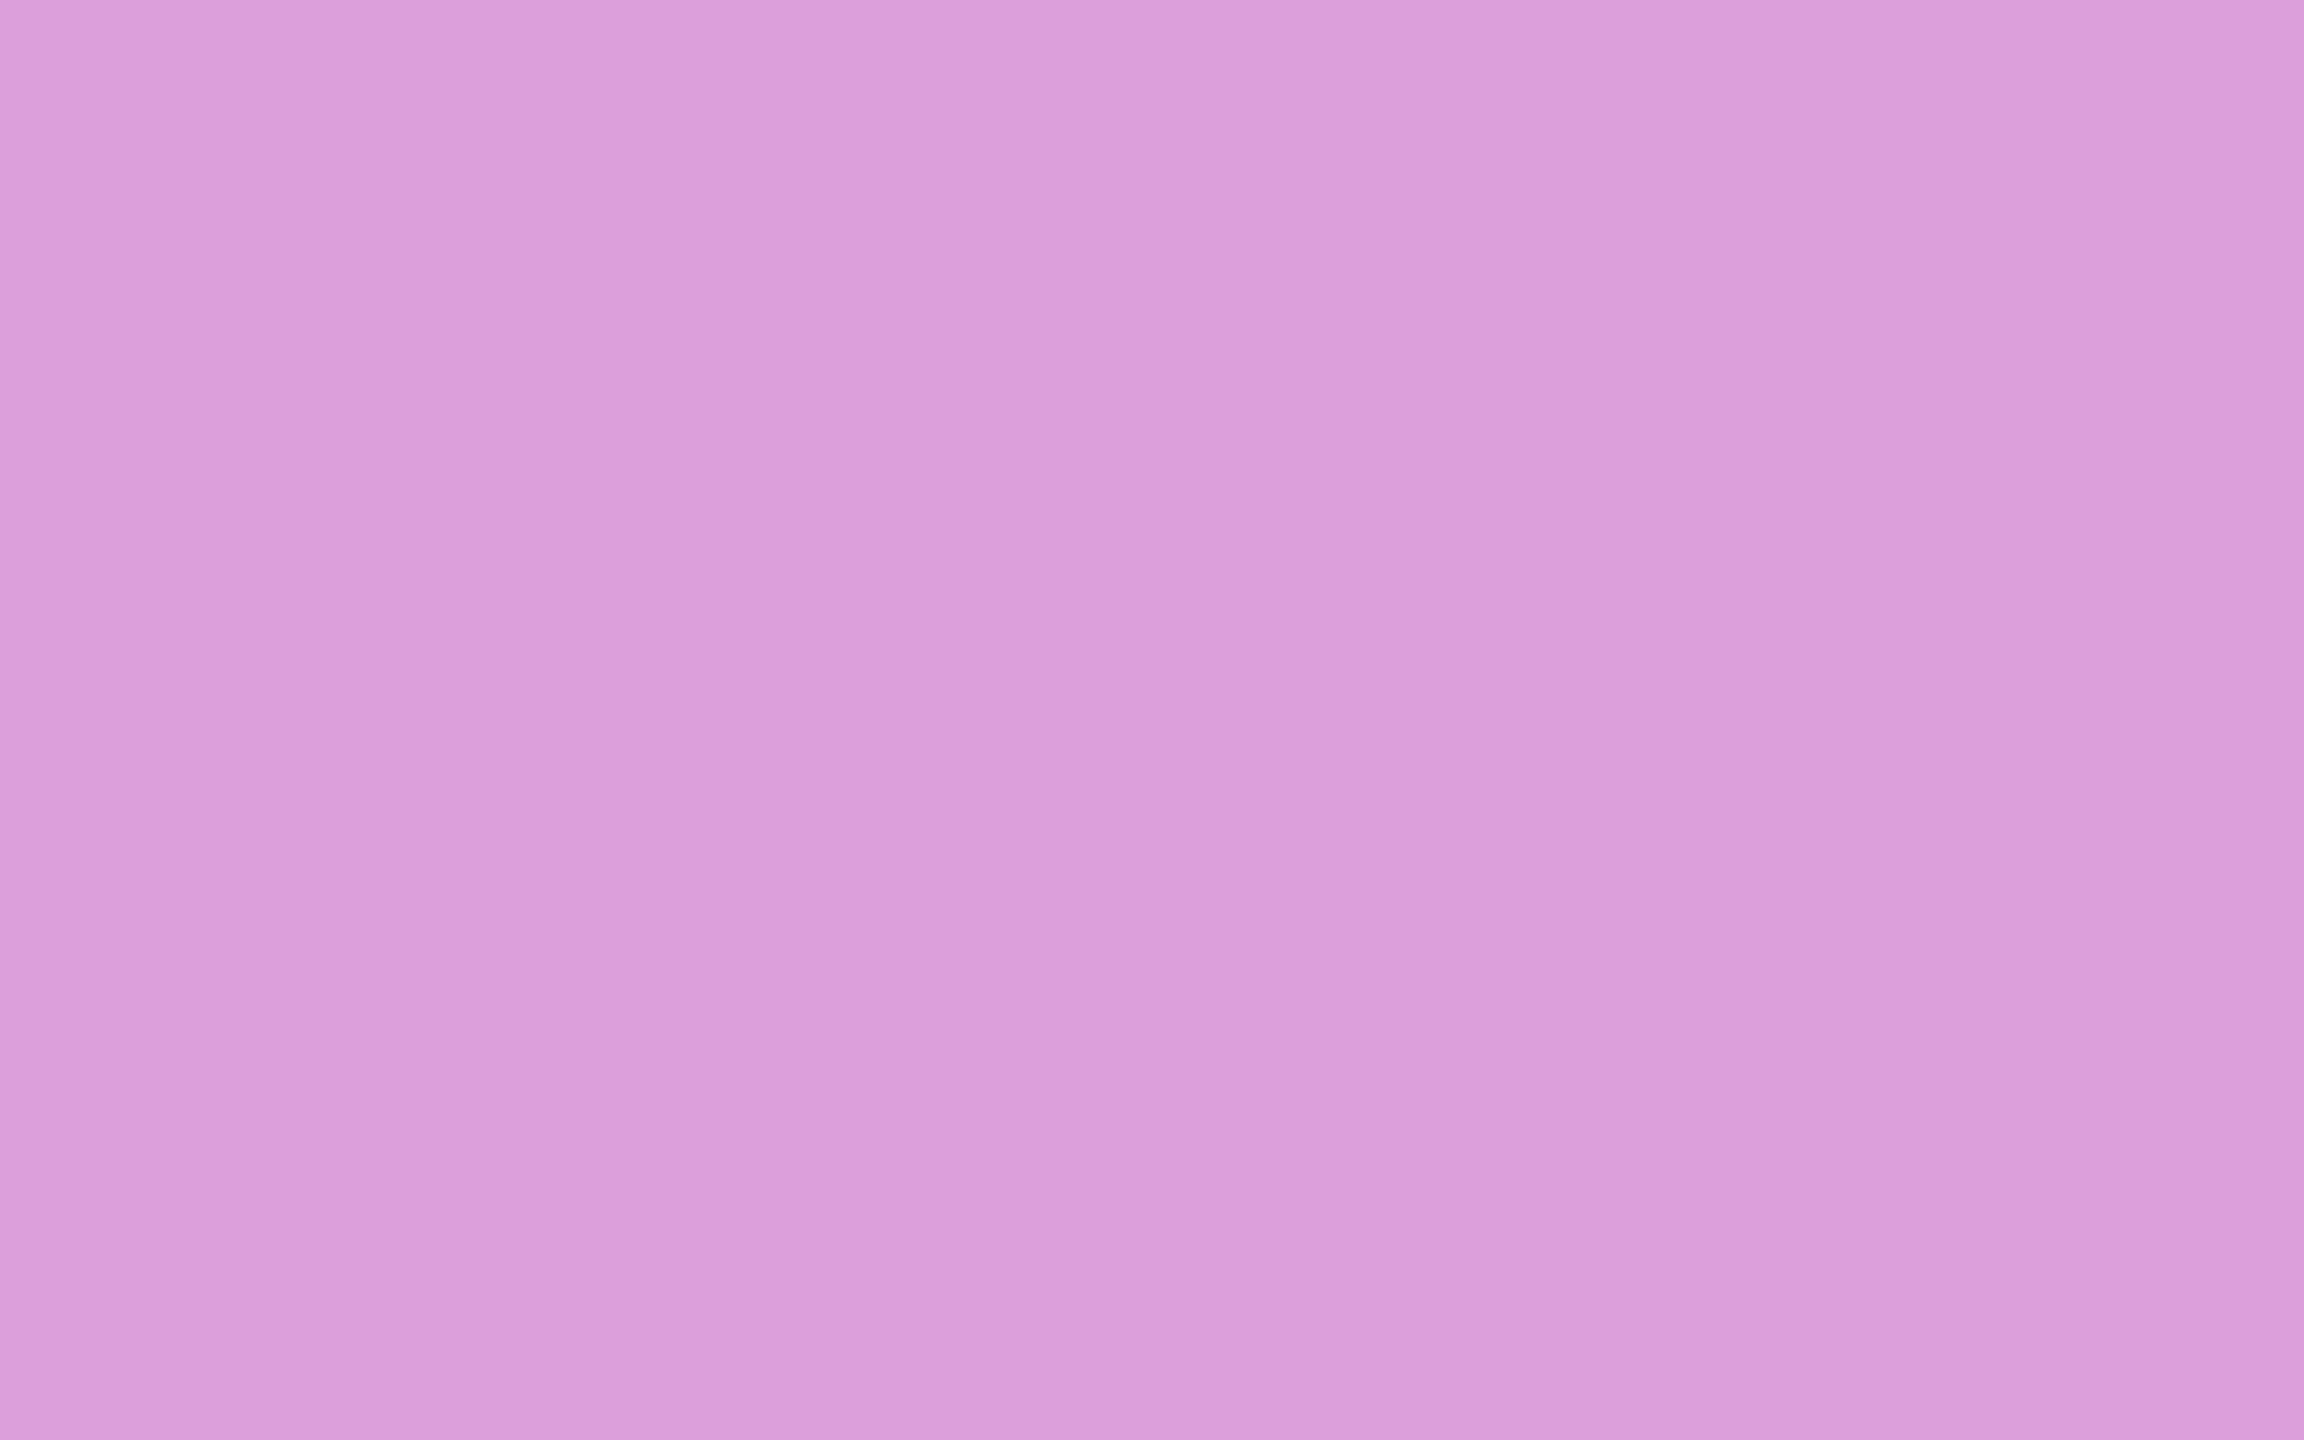 2304x1440 Pale Plum Solid Color Background